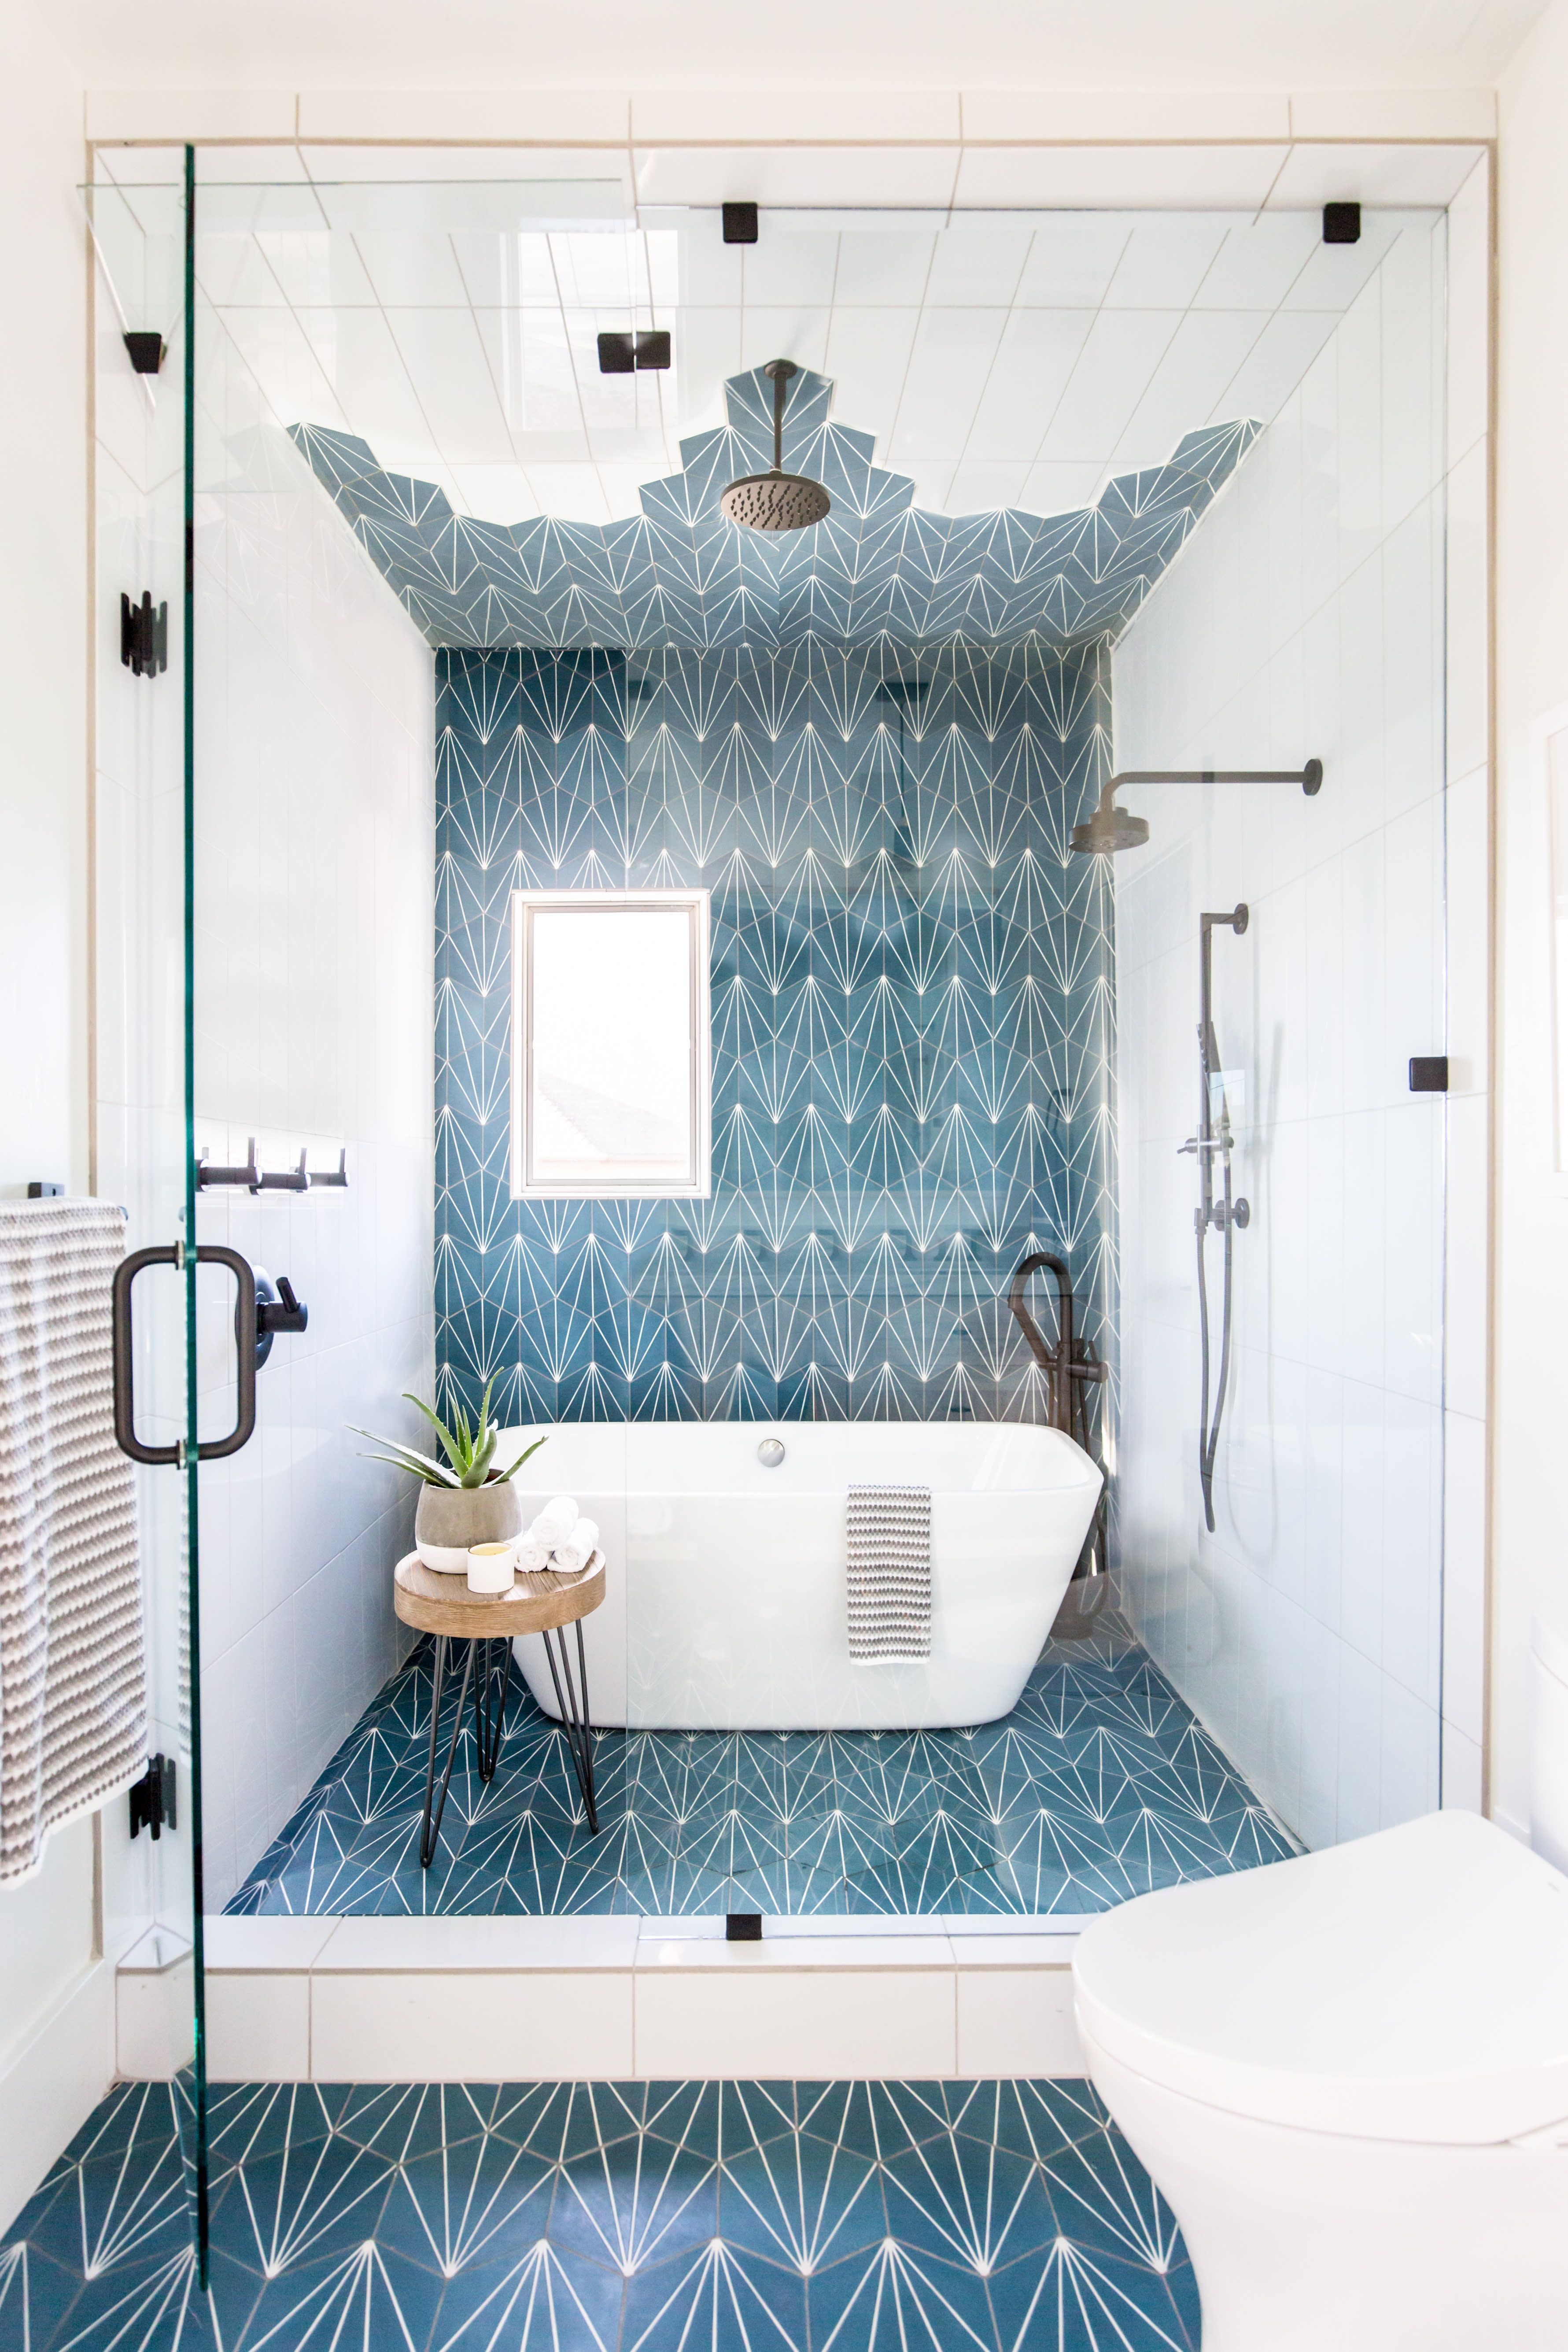 This Kids Bathroom Is So Chic That Even Adults Will Be Jealous Bathroom Interior Design Bathrooms Remodel Bathroom Design Bathroom design for kids